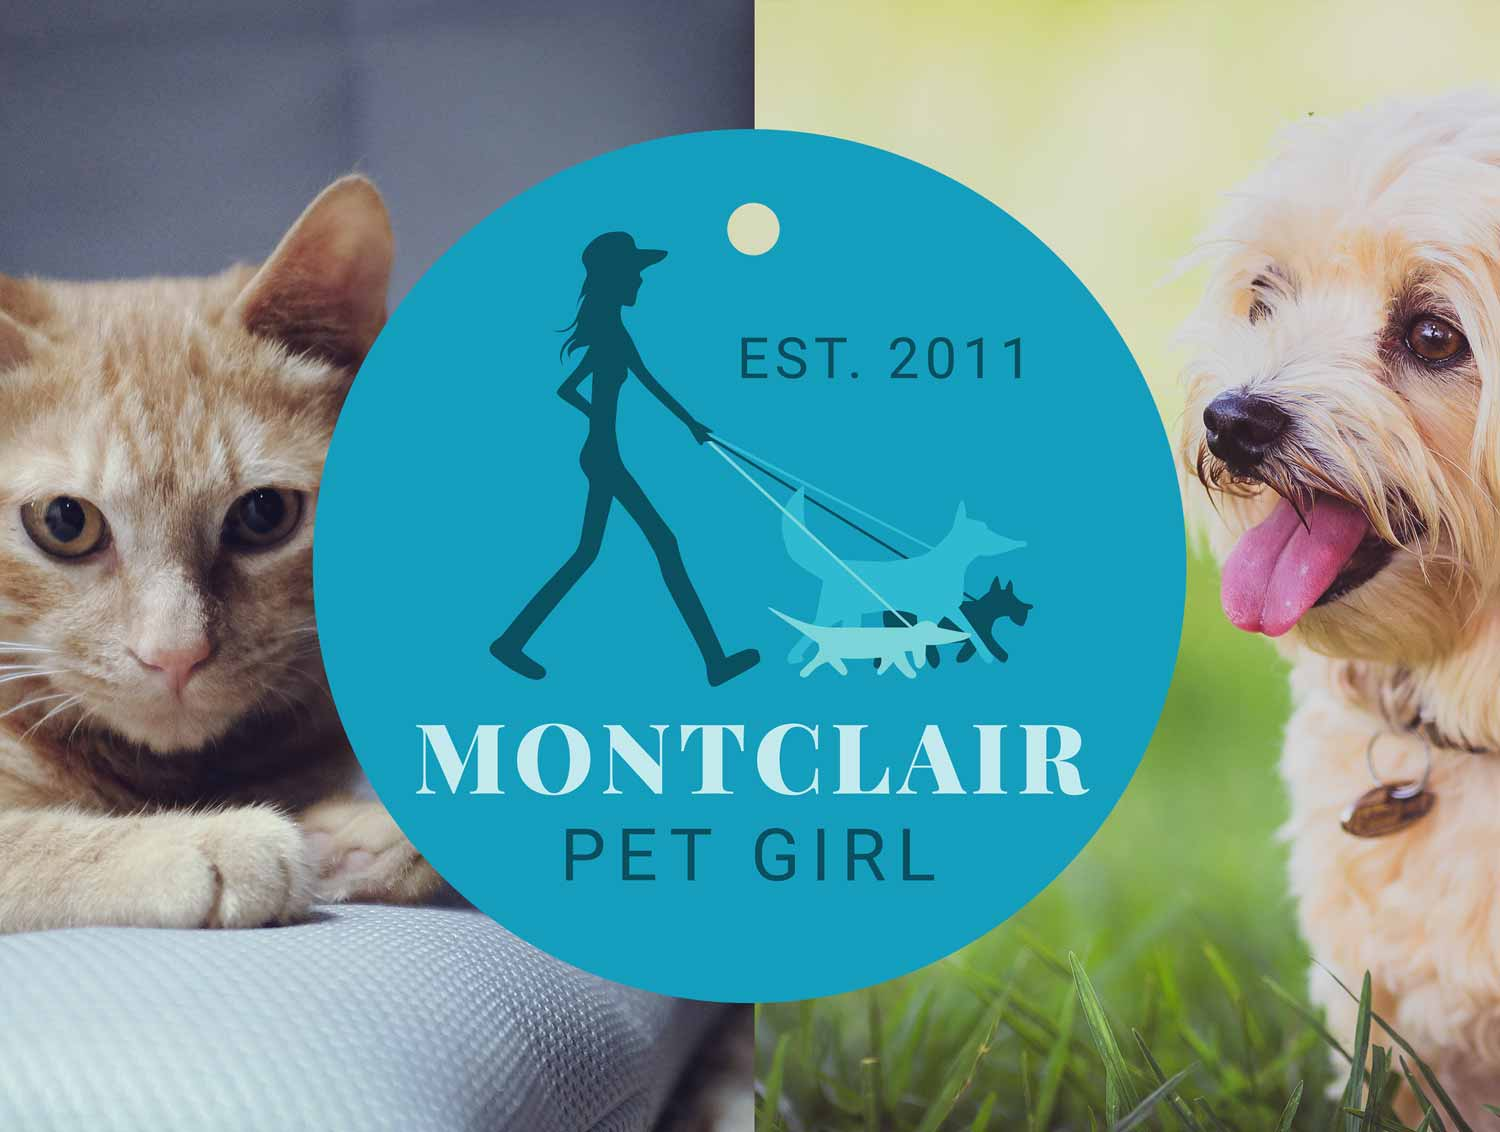 Montclair Pet Girl logo over a photo of a cat and a dog.